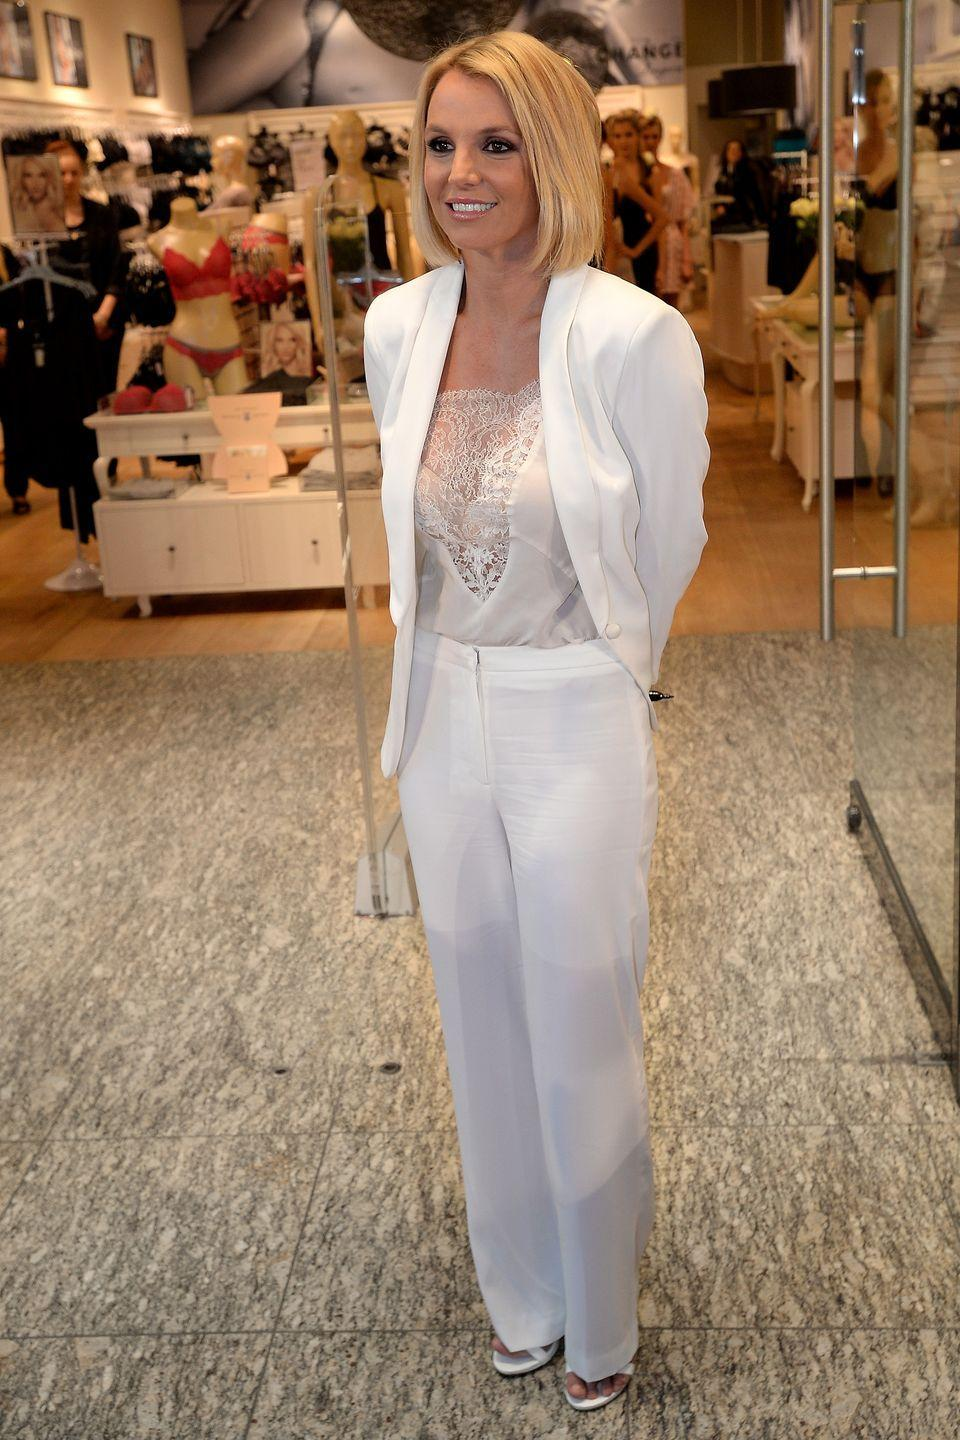 <p>Okaaaaay Ms. Britney showing us up with some white party realness. And that lil' bob?! Trés cute. </p>